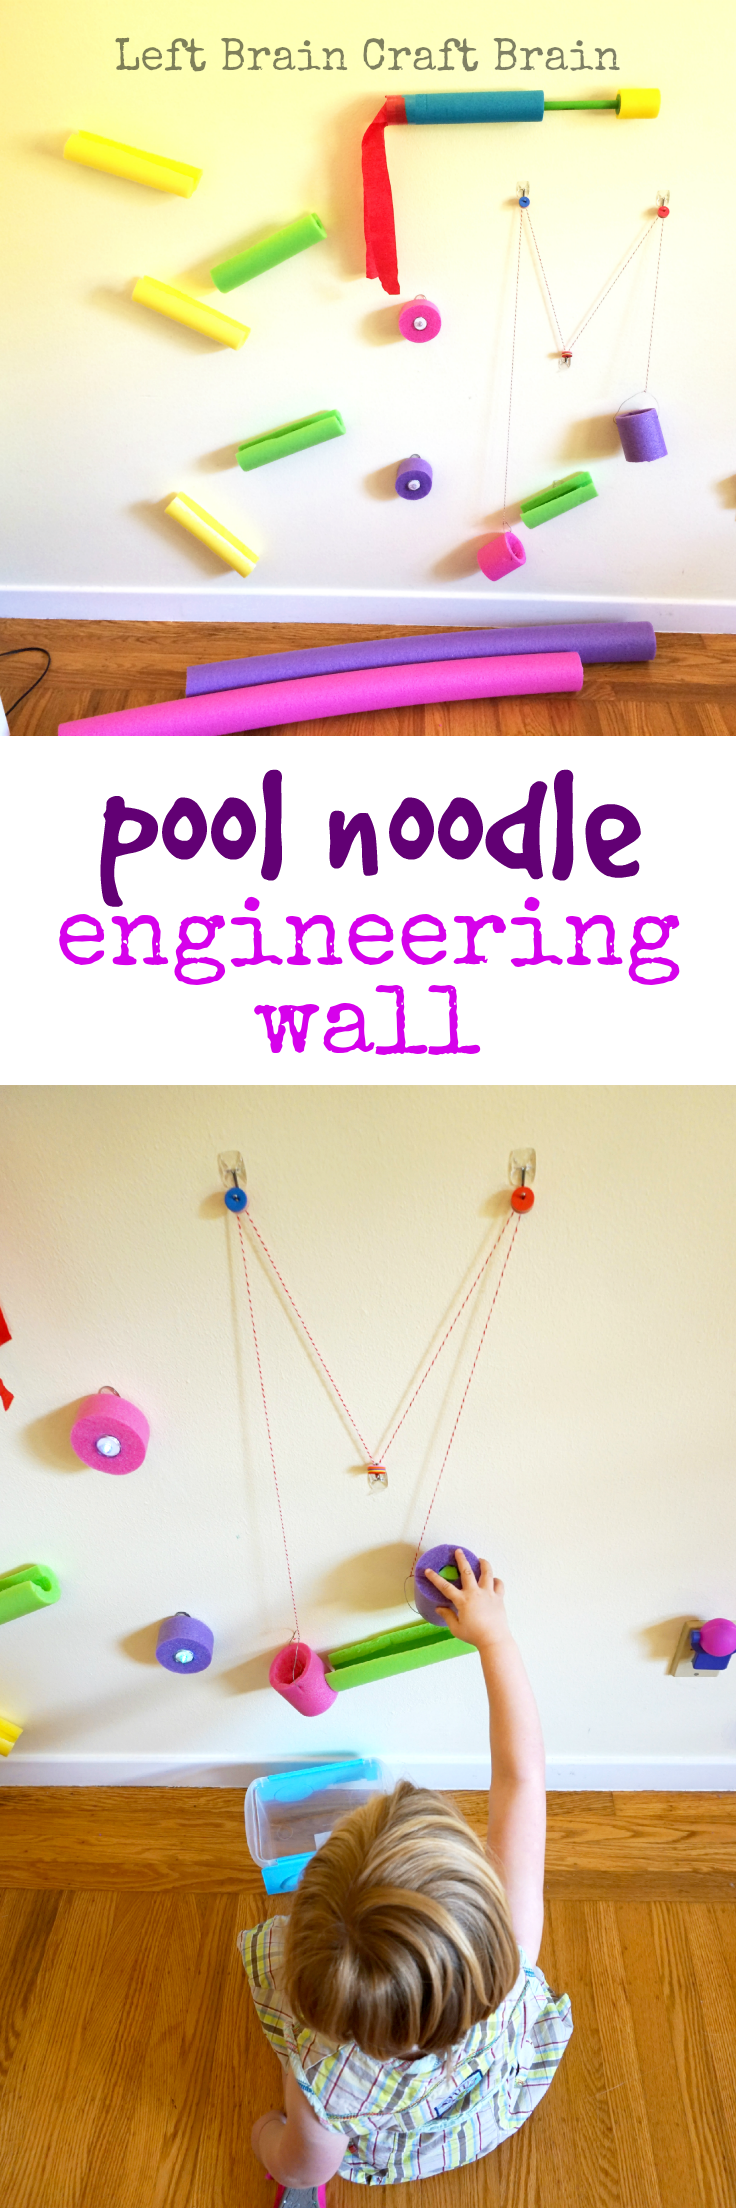 Awesome Pool Noodle Engineering Wall for Kids